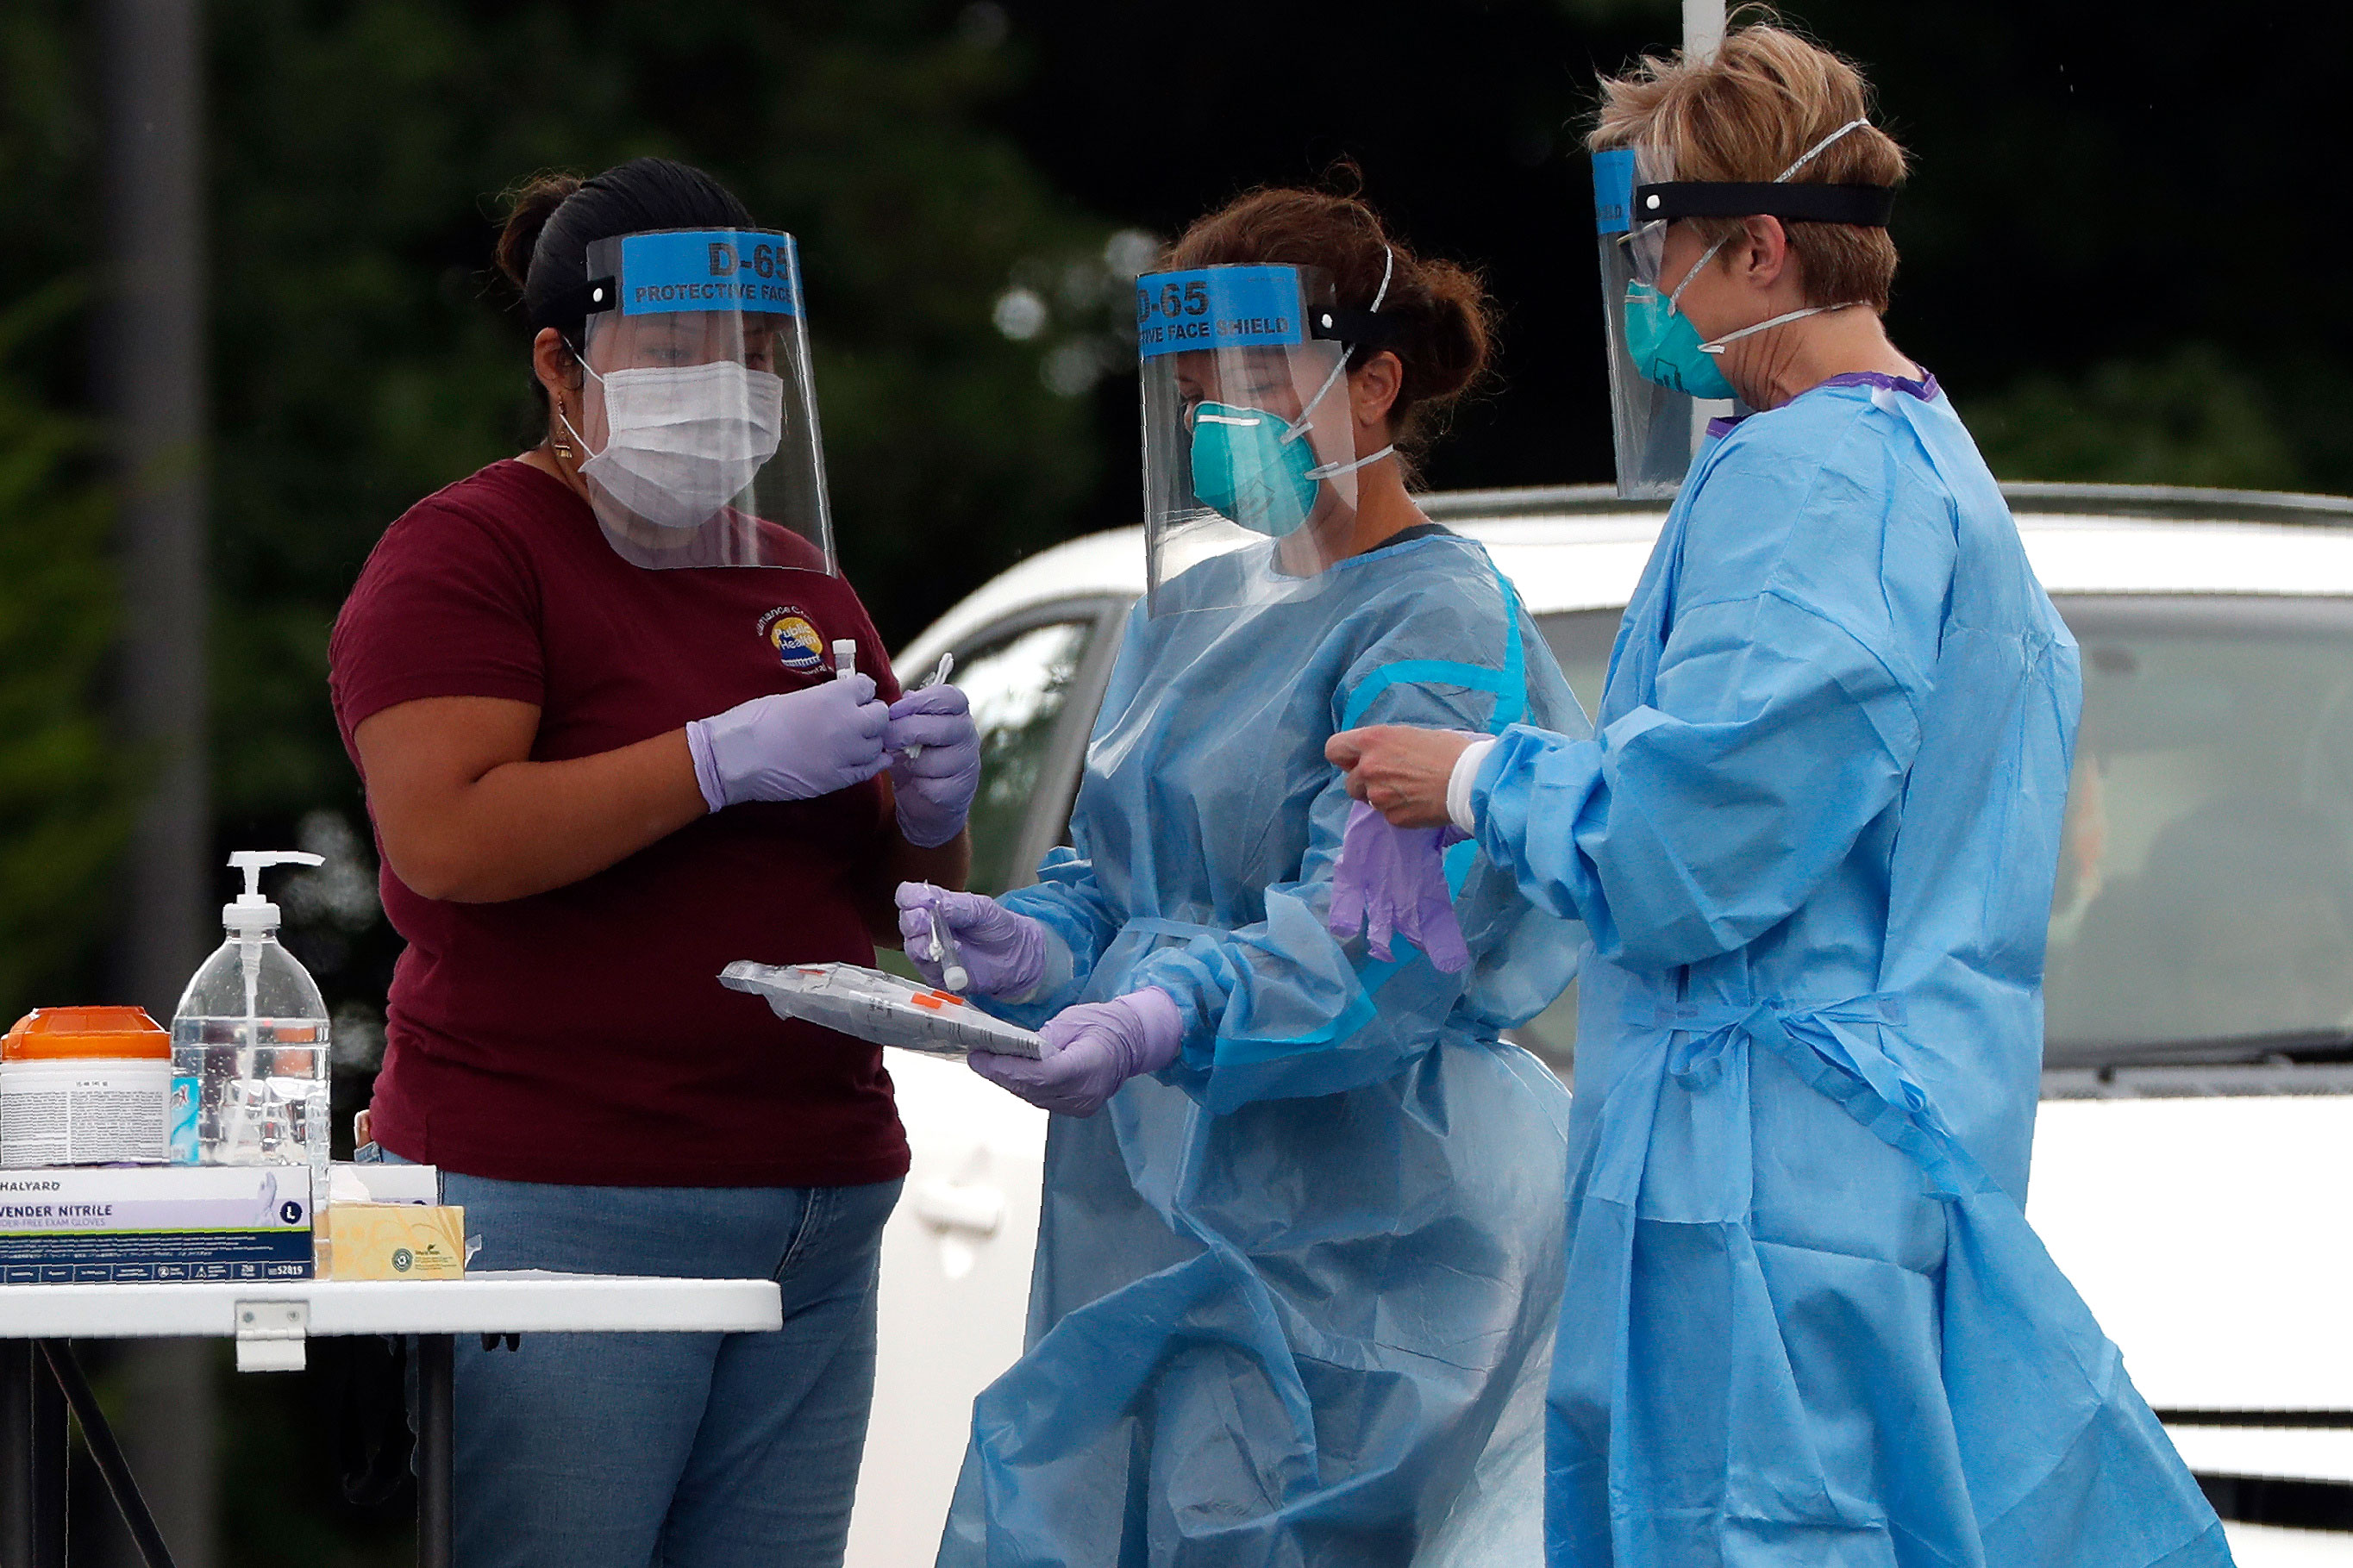 Medical personnel handle coronavirus test samples on July 9 in Burlington, North Carolina.